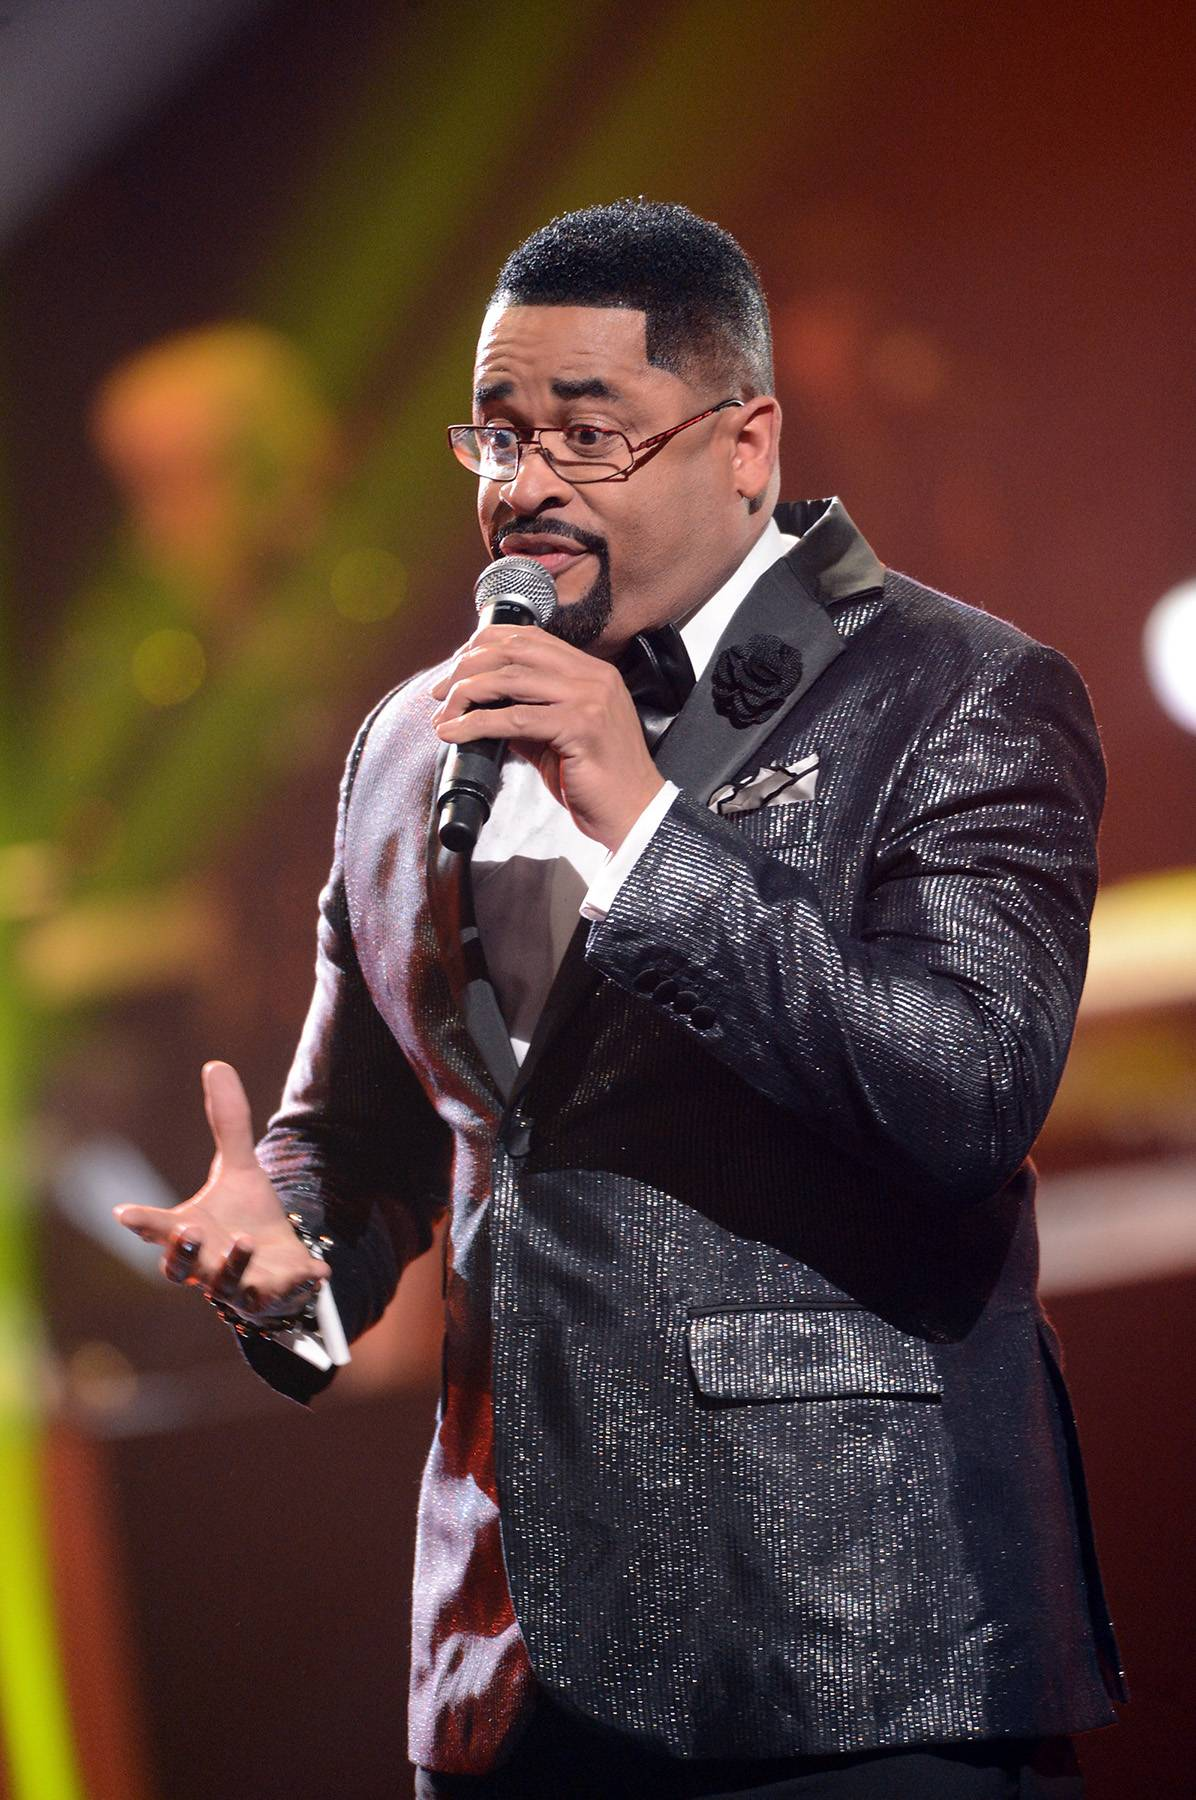 Glory to Your Name - Stellar Award-winner Byron Cage has been moving audiences since he was a teen, and it's no different when he took the stage for Bobby Jones Gospel. (Photo: Rick Diamond/Getty Images for The Stellar Awards)